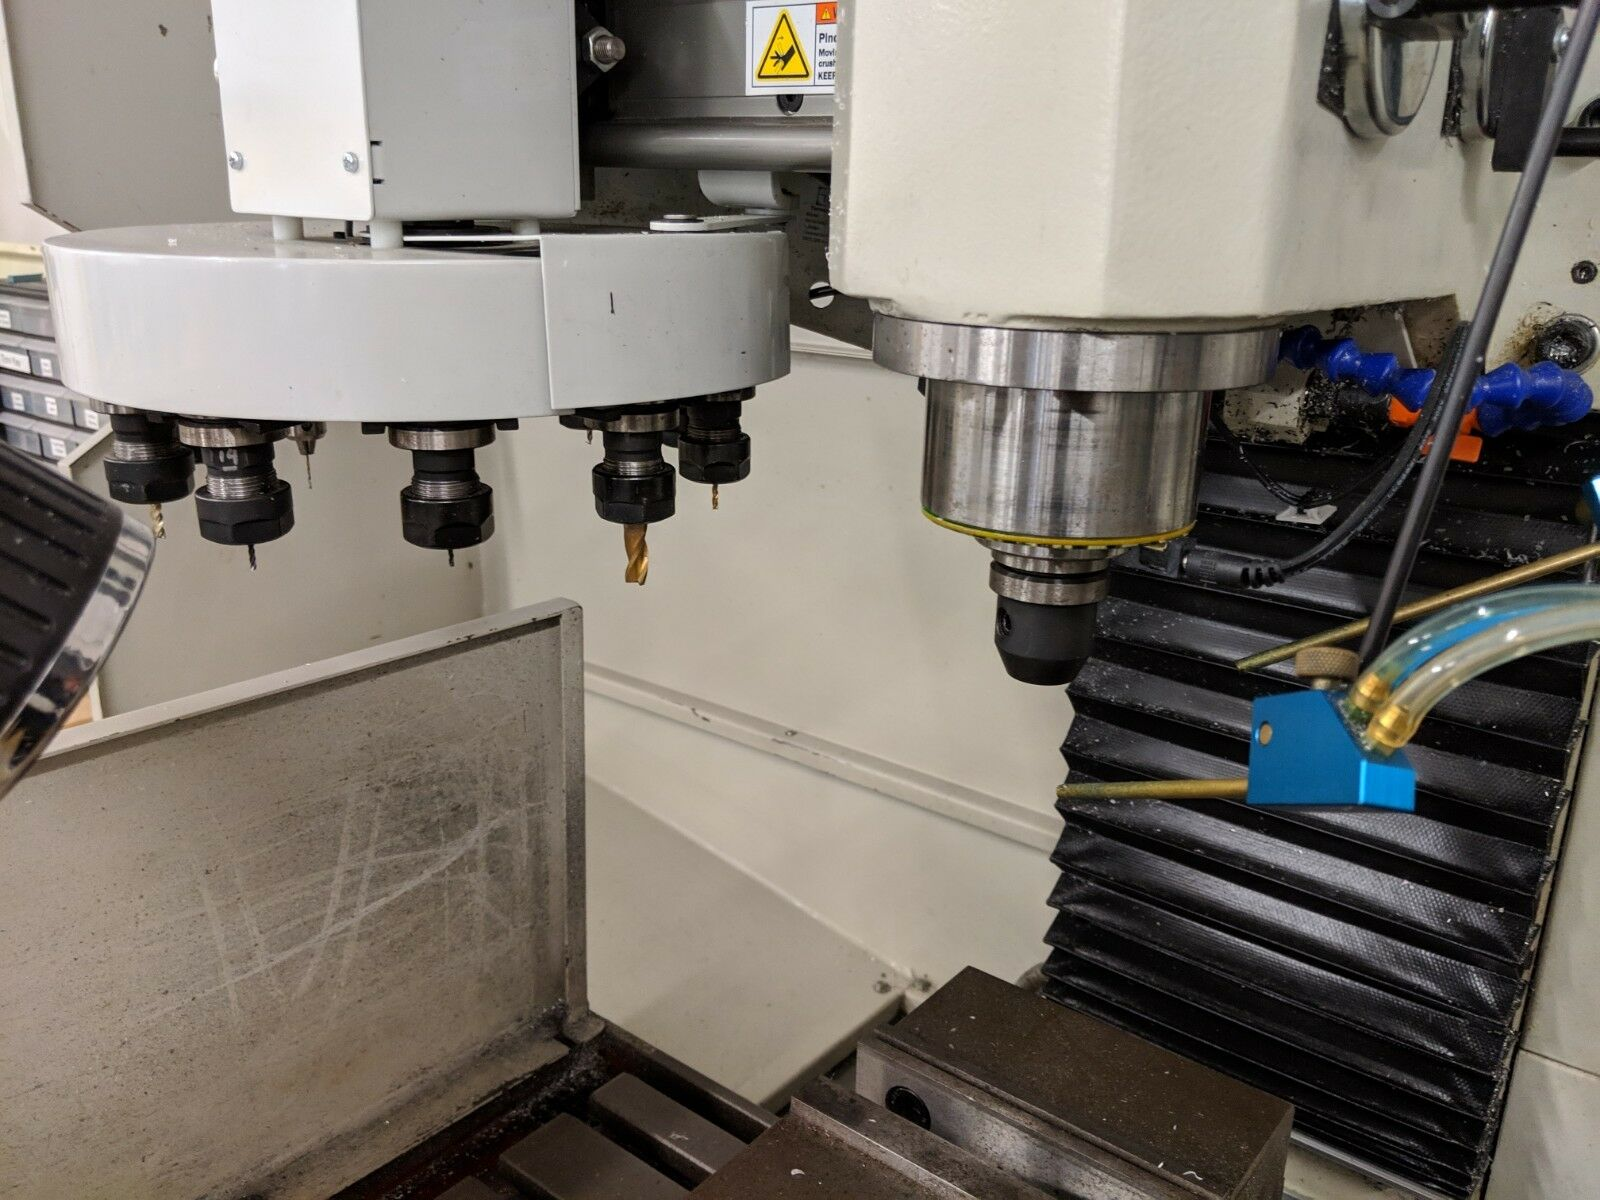 2013 Tormach PCNC 1100 - Series 3 - Loaded with Options: ATC, Deluxe Stand,  Vid!